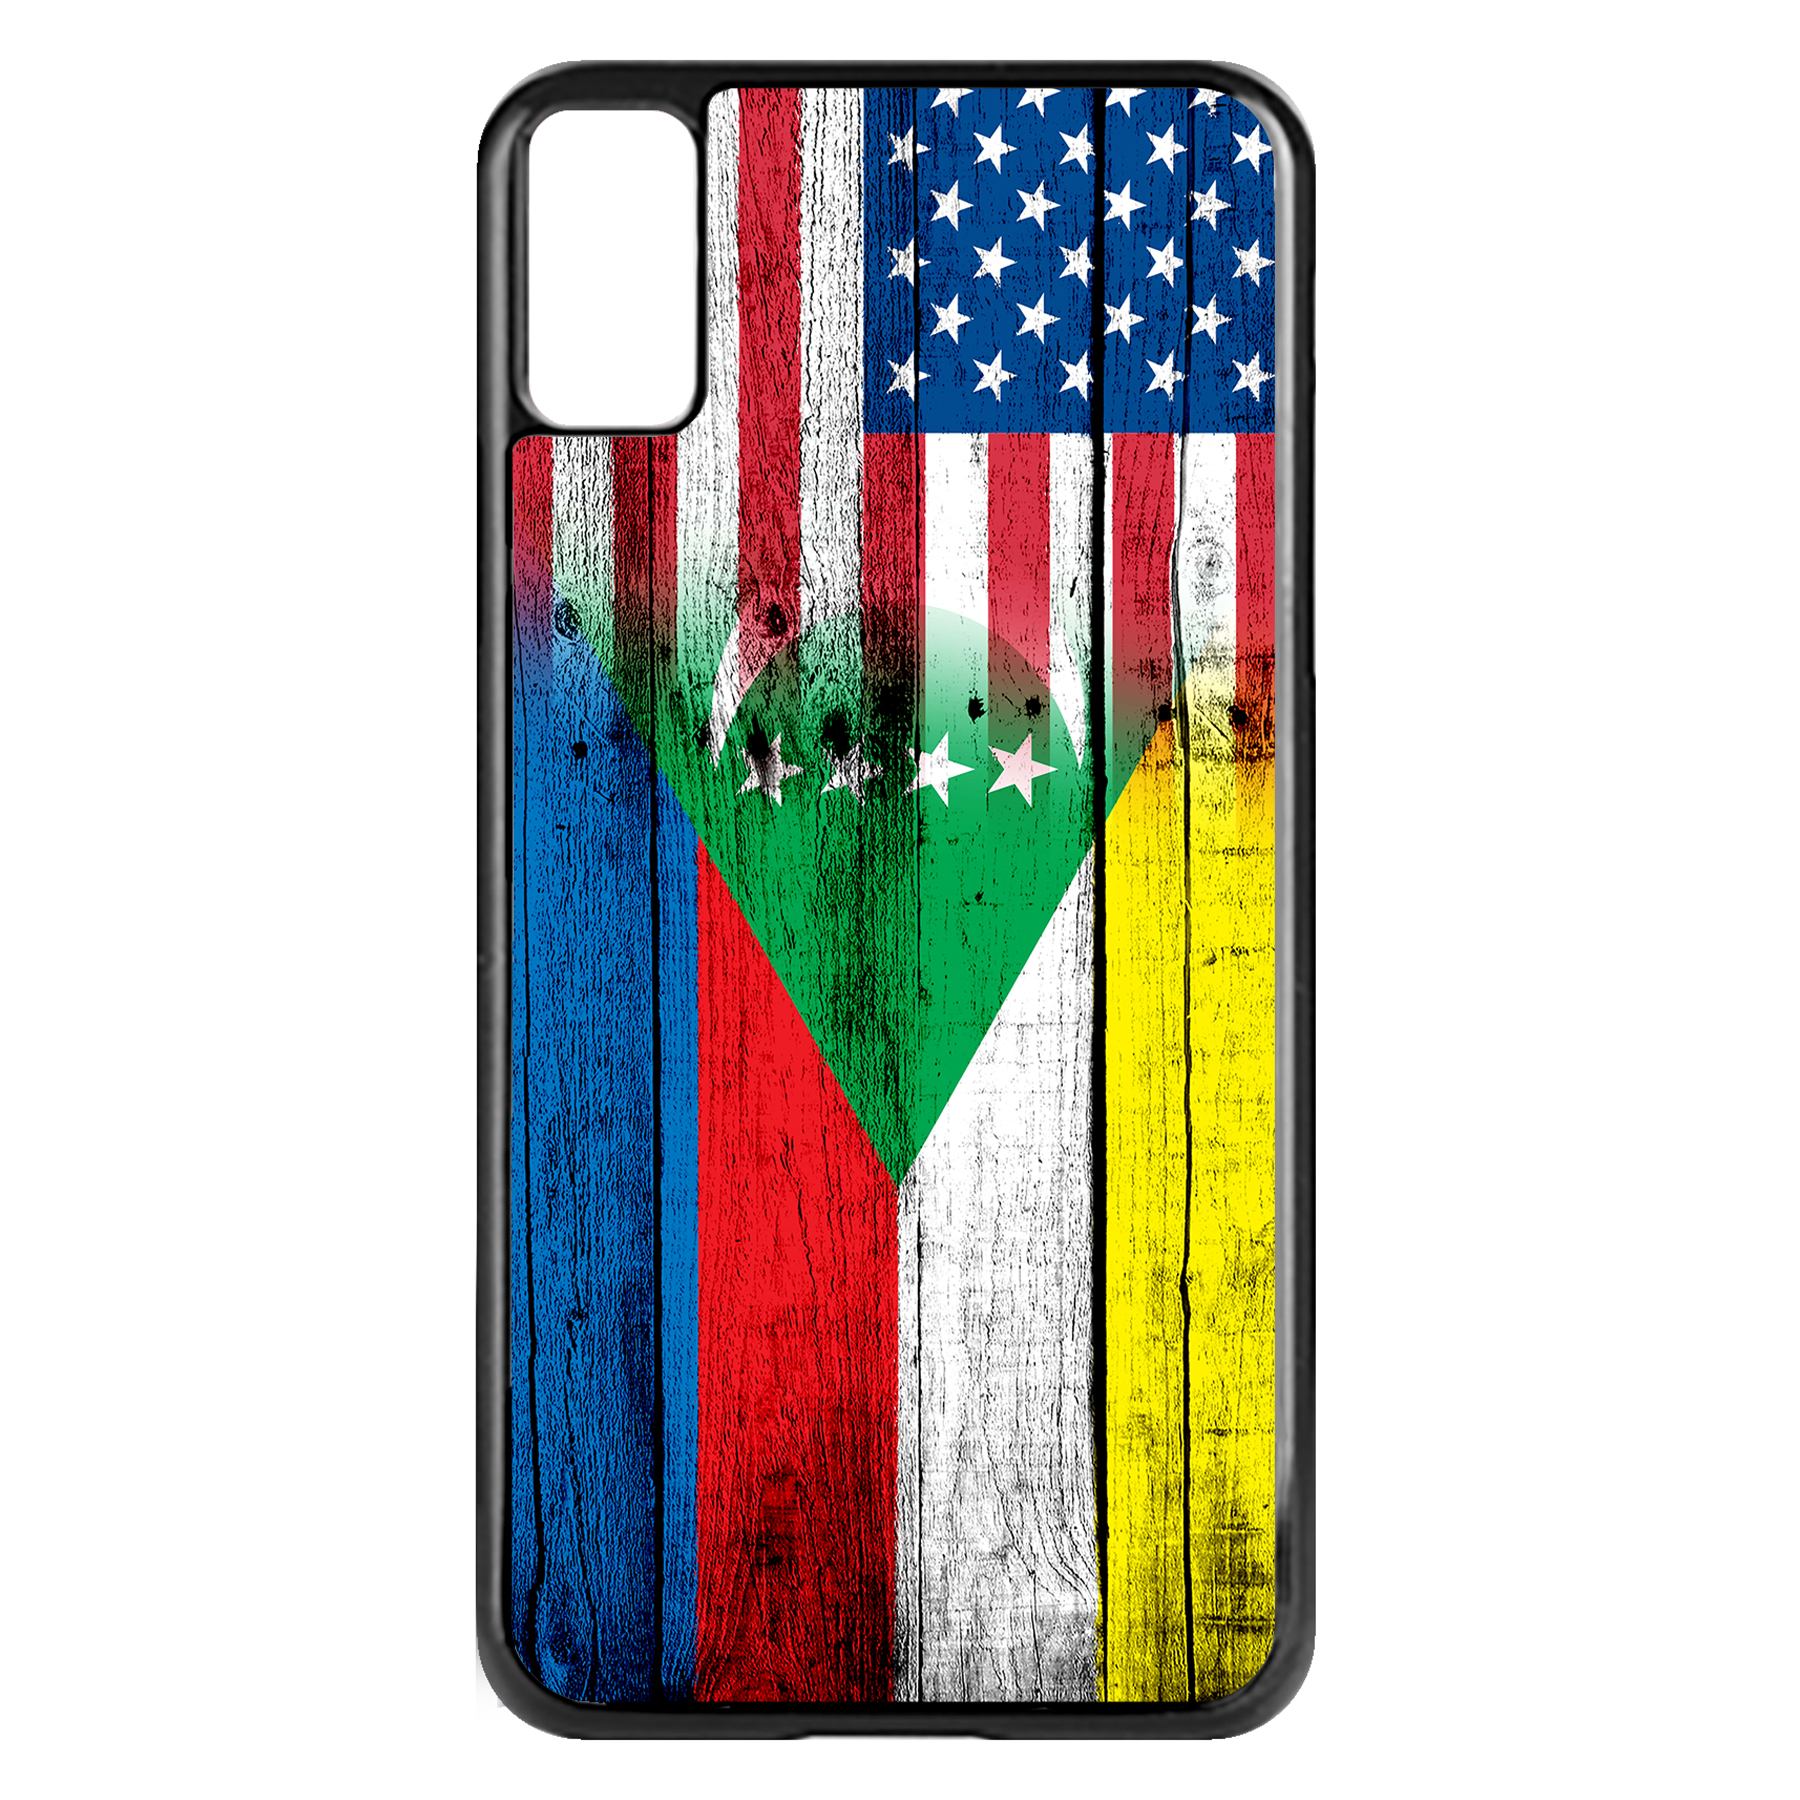 Apple-iPhone-Case-with-Flag-of-Comoros-Comorian-Many-Design-Options thumbnail 15